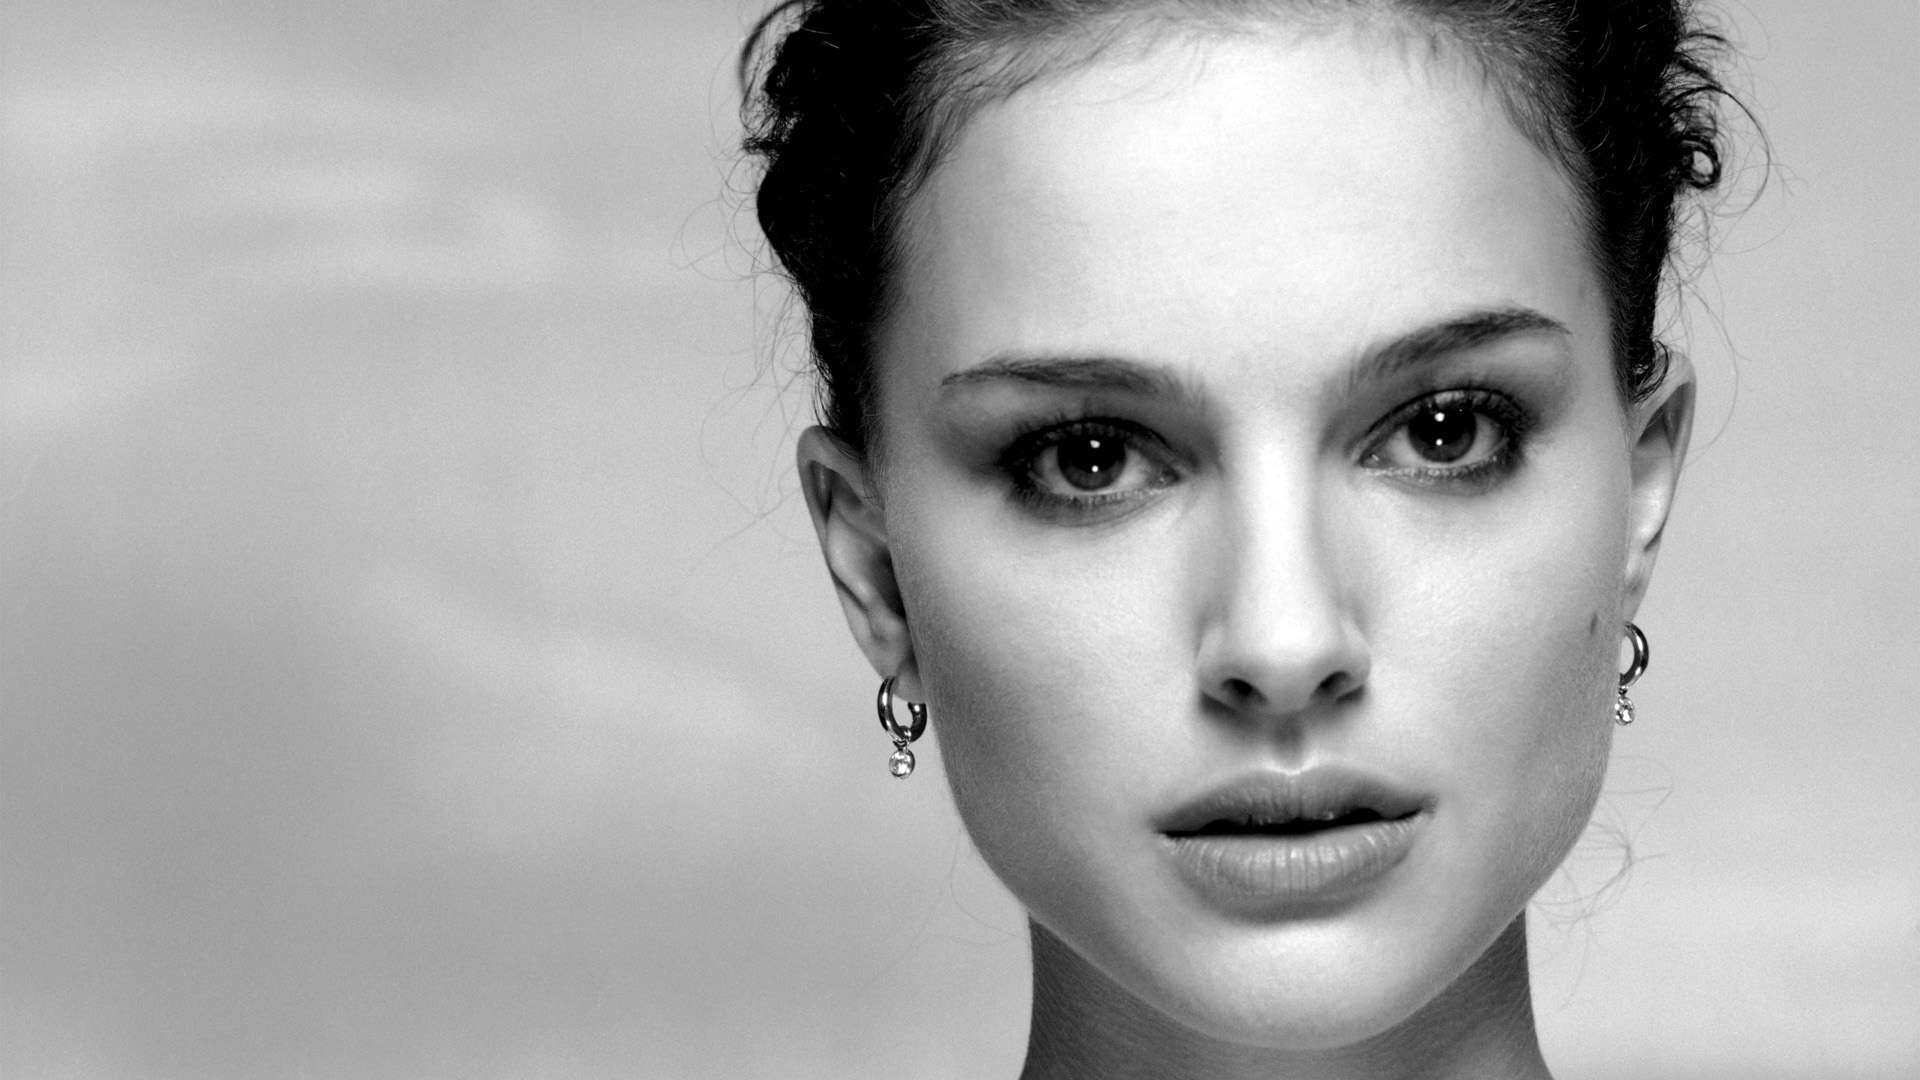 Natalie Portman Wallpapers Animation | vergapipe.